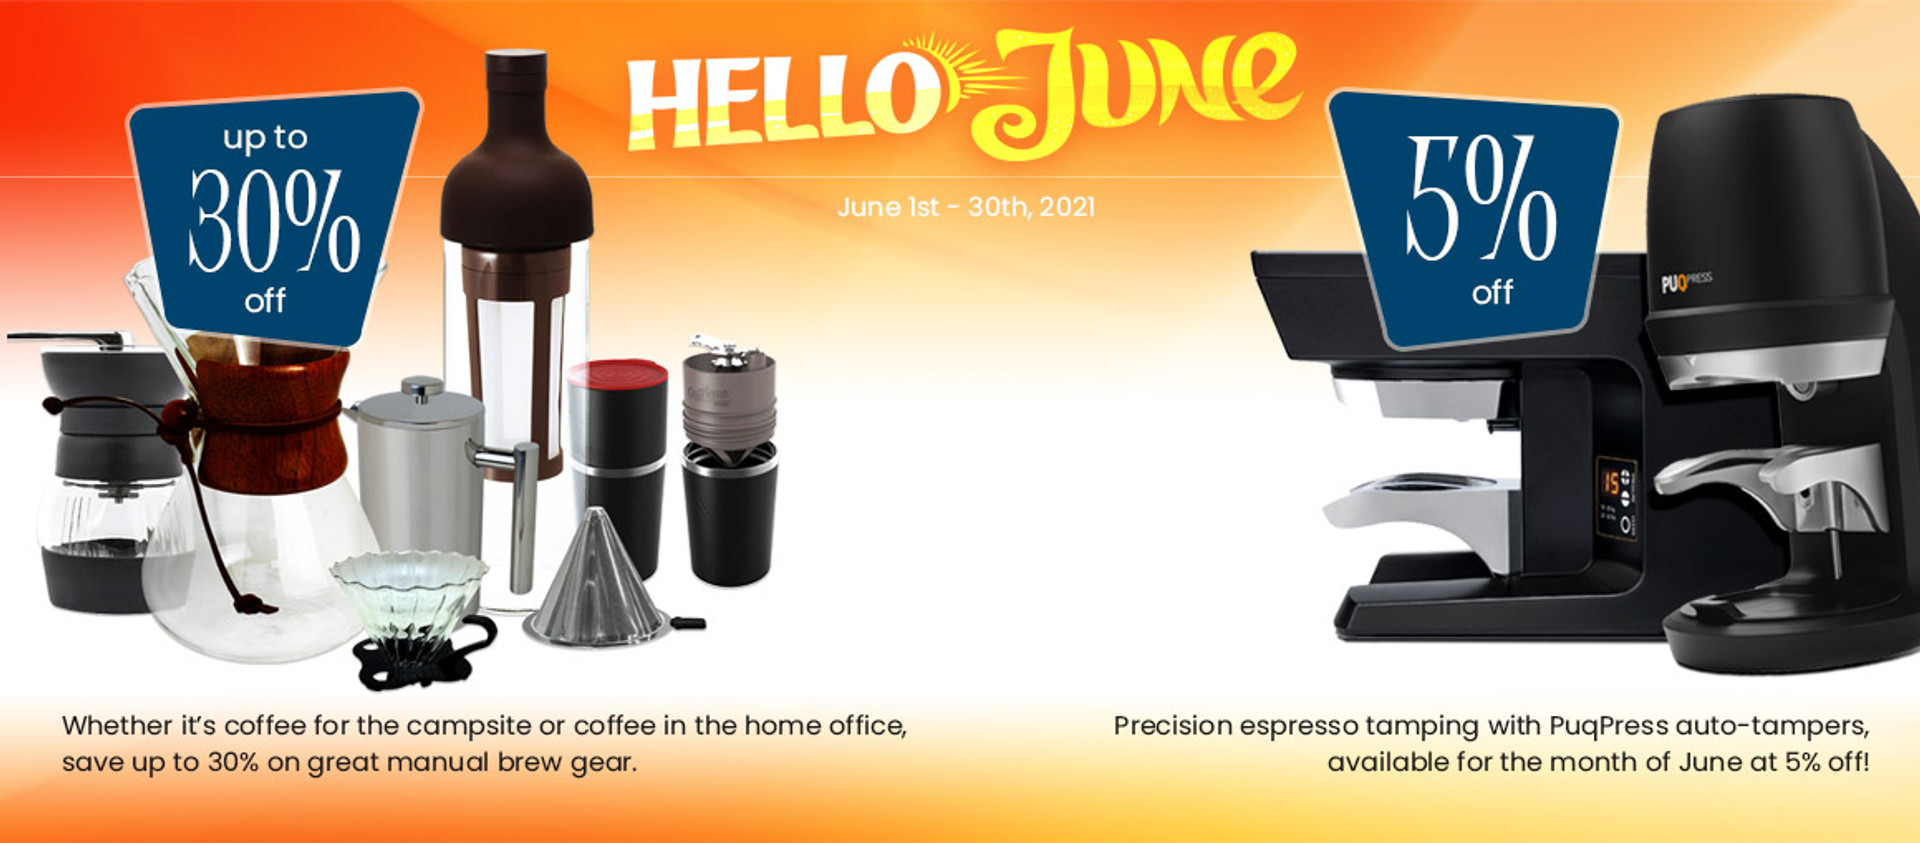 Hello June! Sale on Manual Brewers and Automatic Tampers